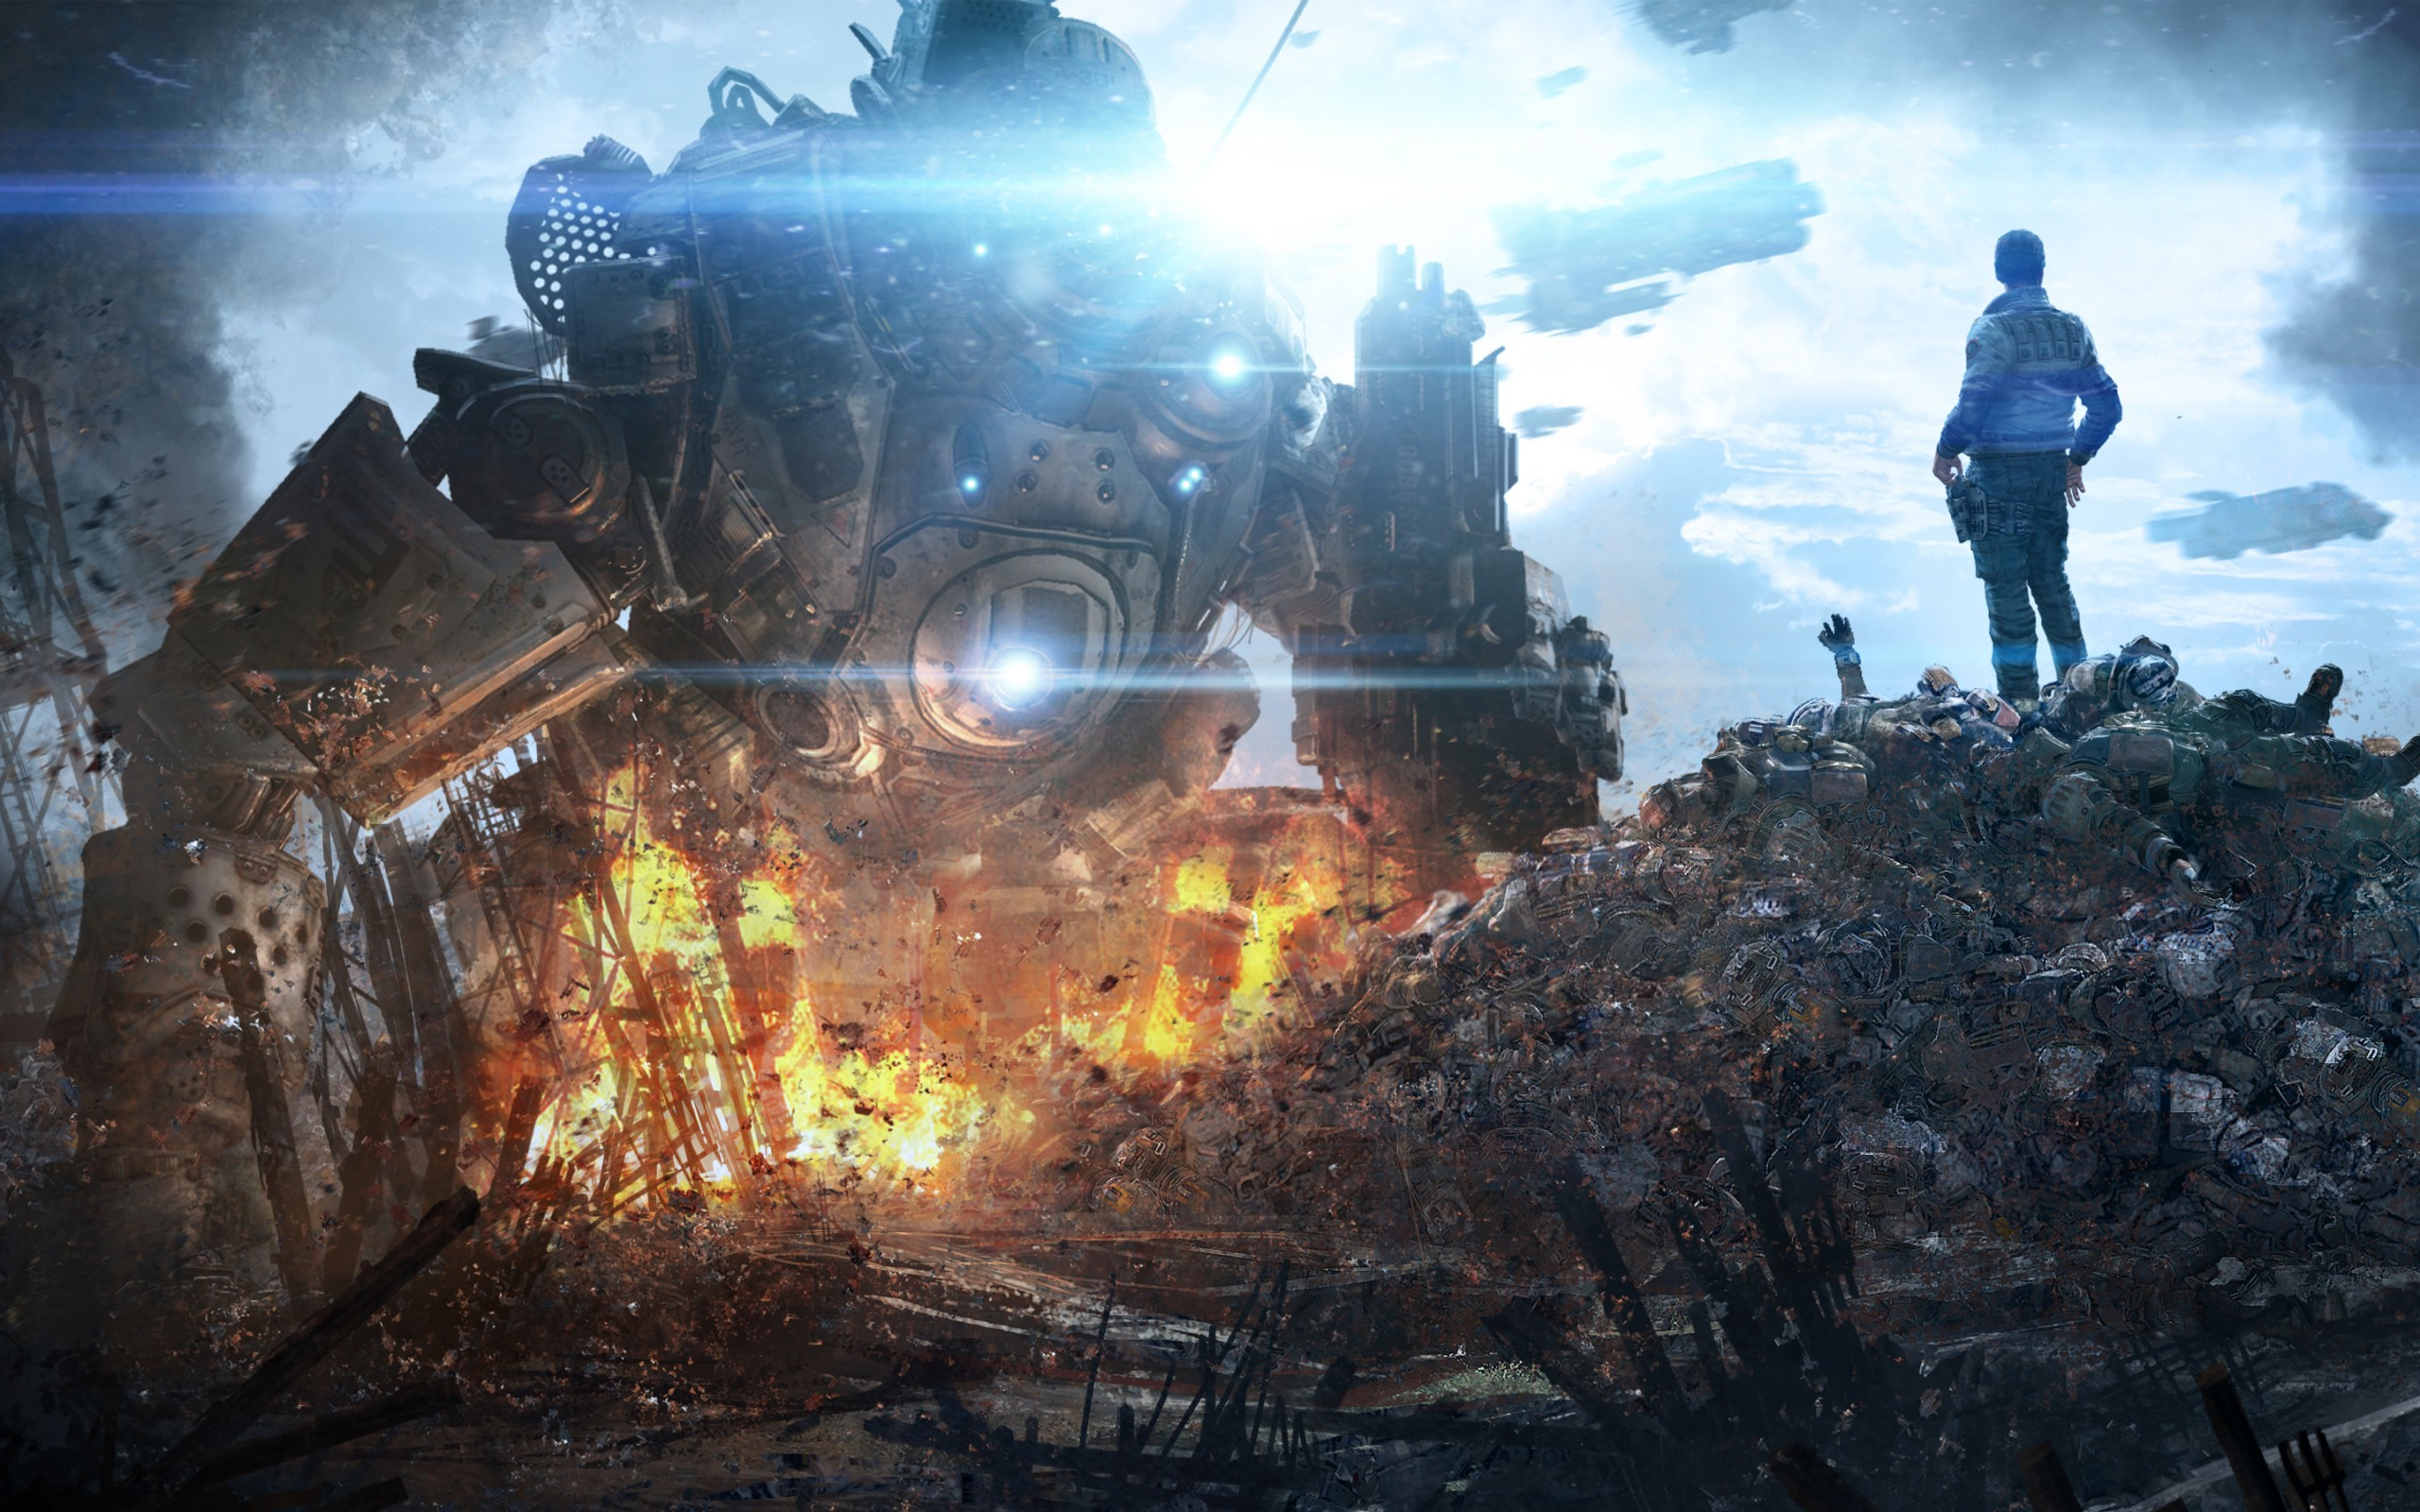 Download Fall Wallpaper For Laptops Titanfall Game 2014 Wallpapers Hd Wallpapers Id 13310